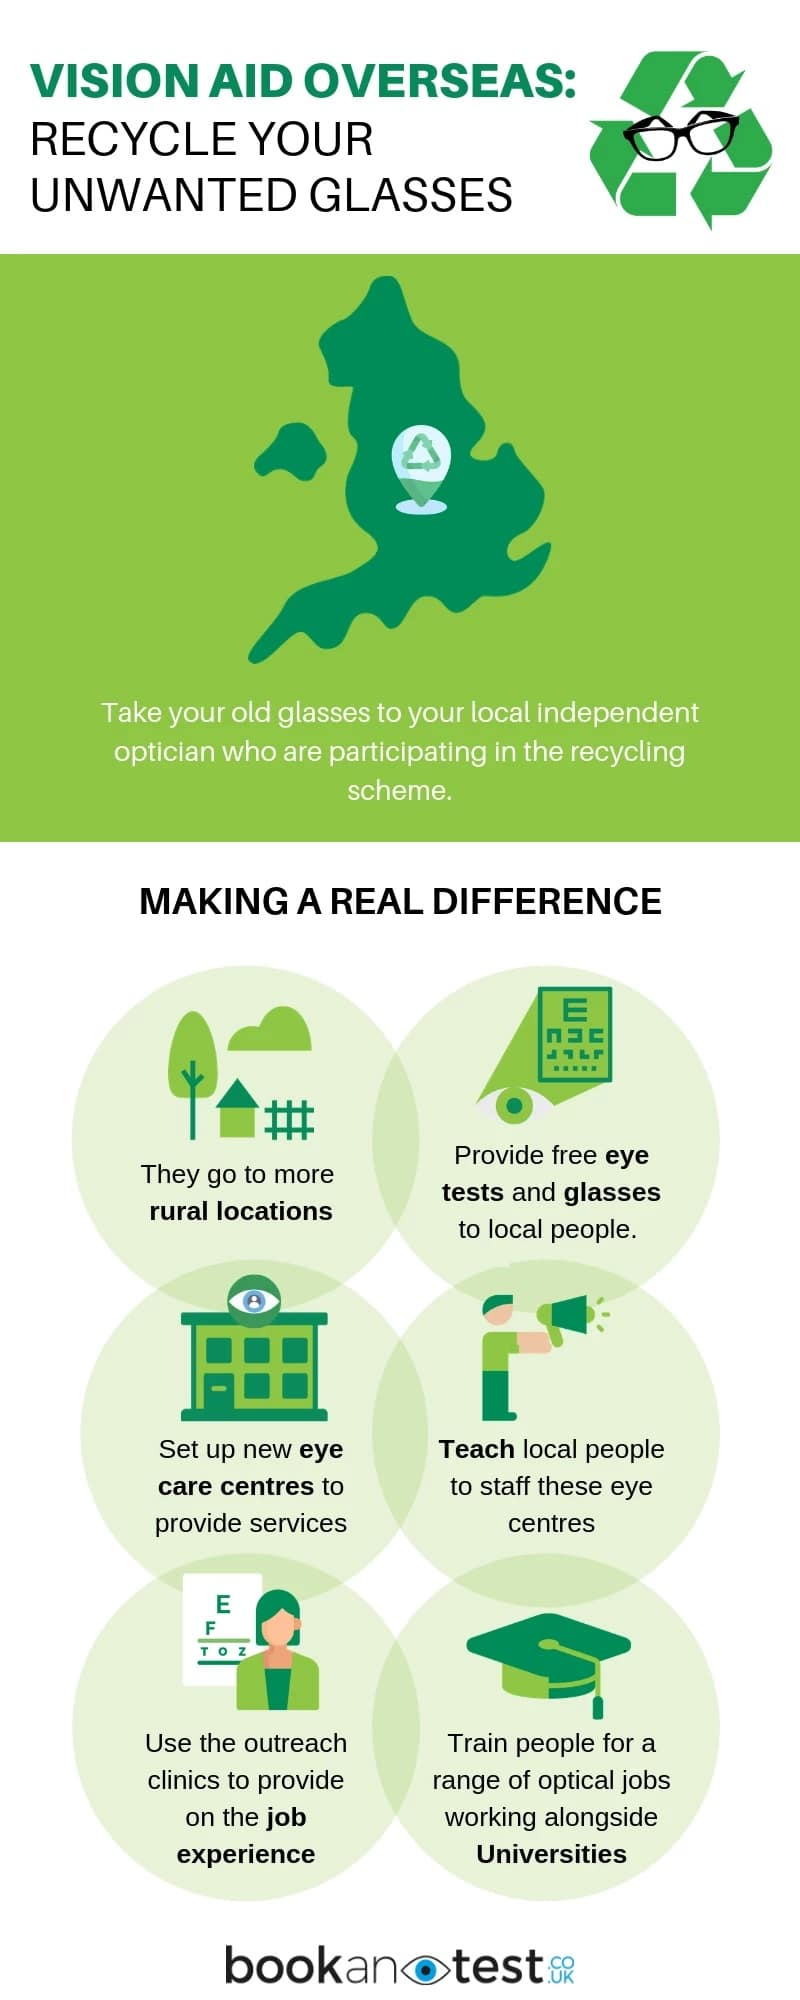 Vision aid overseas Recycle your unwanted glasses